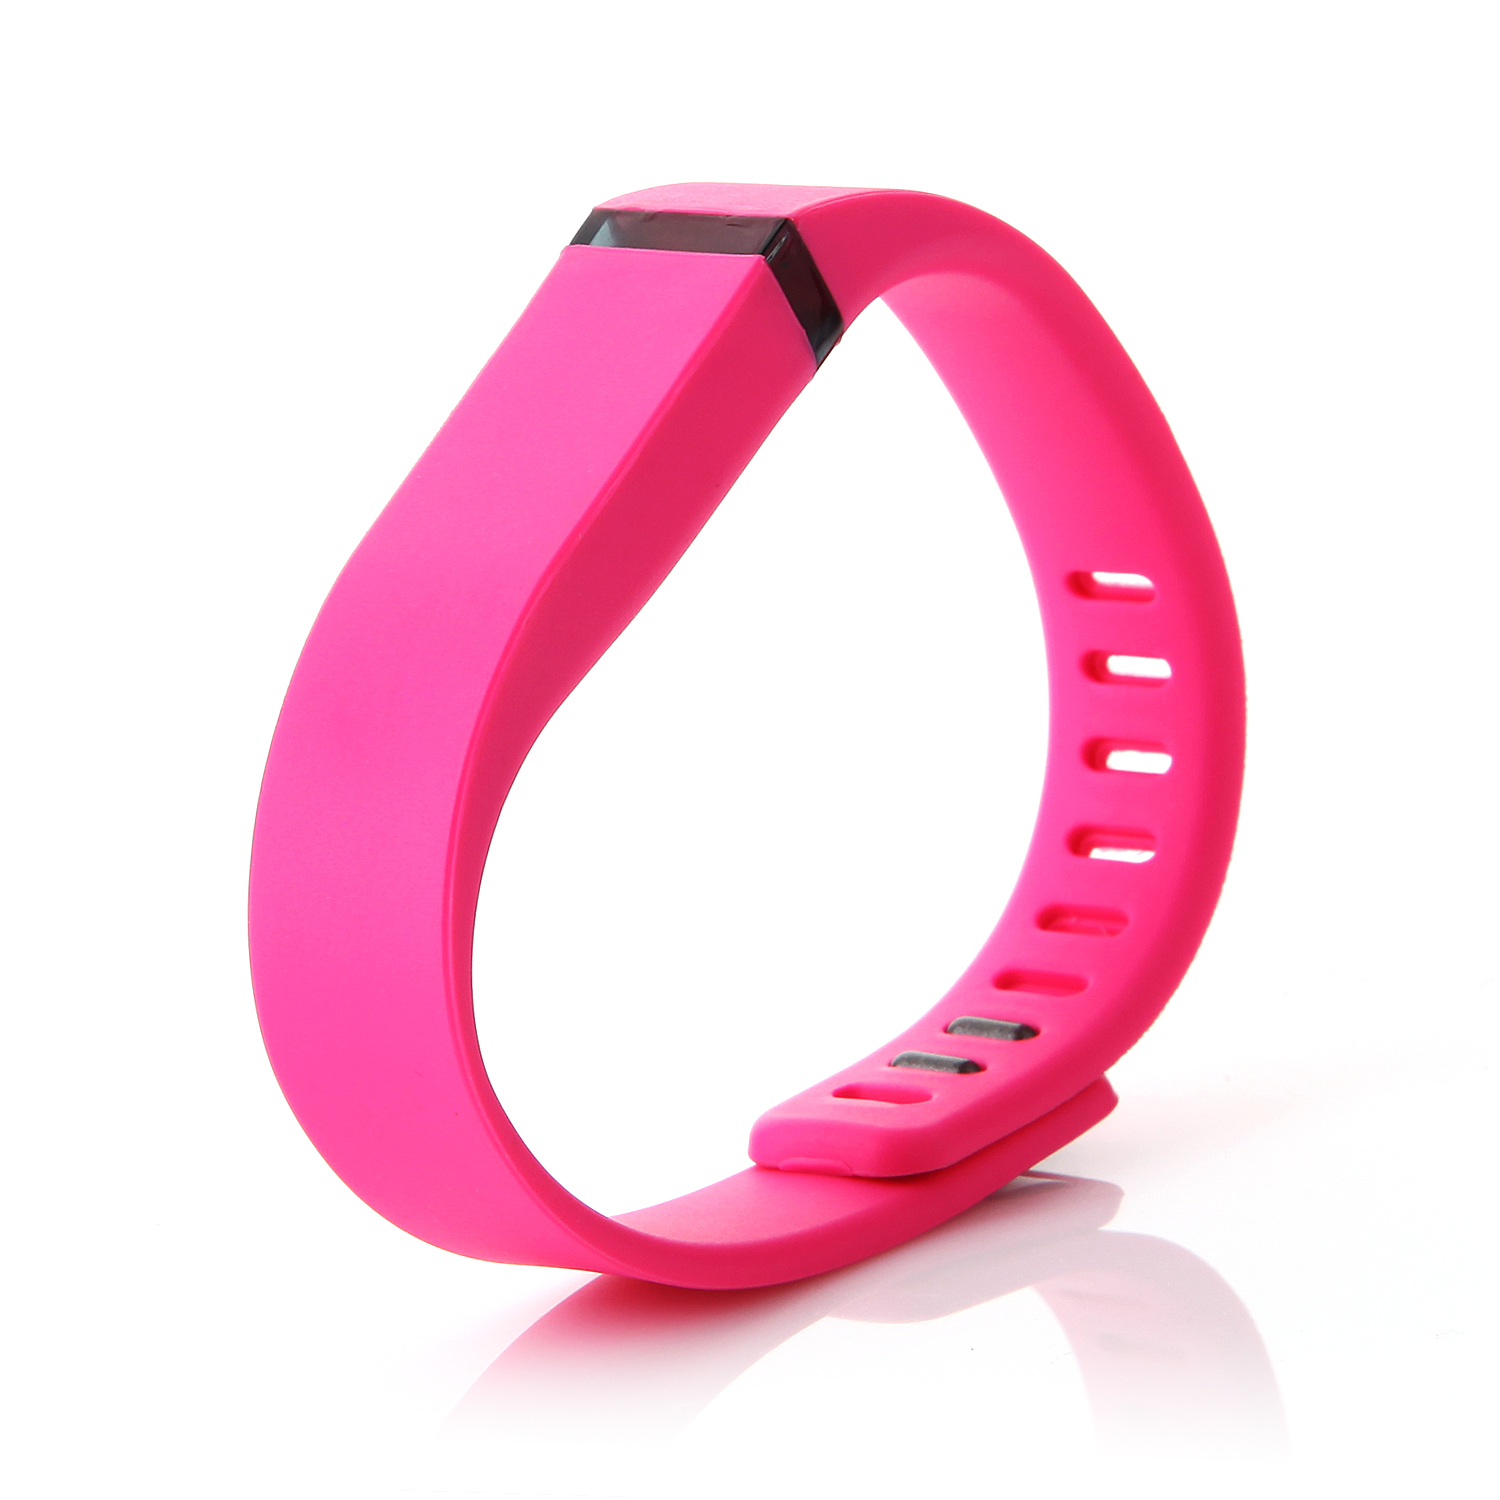 Replacement TPU Wrist Strap Fitbit Flex Wireless Activity Bracelet Wristband Rose